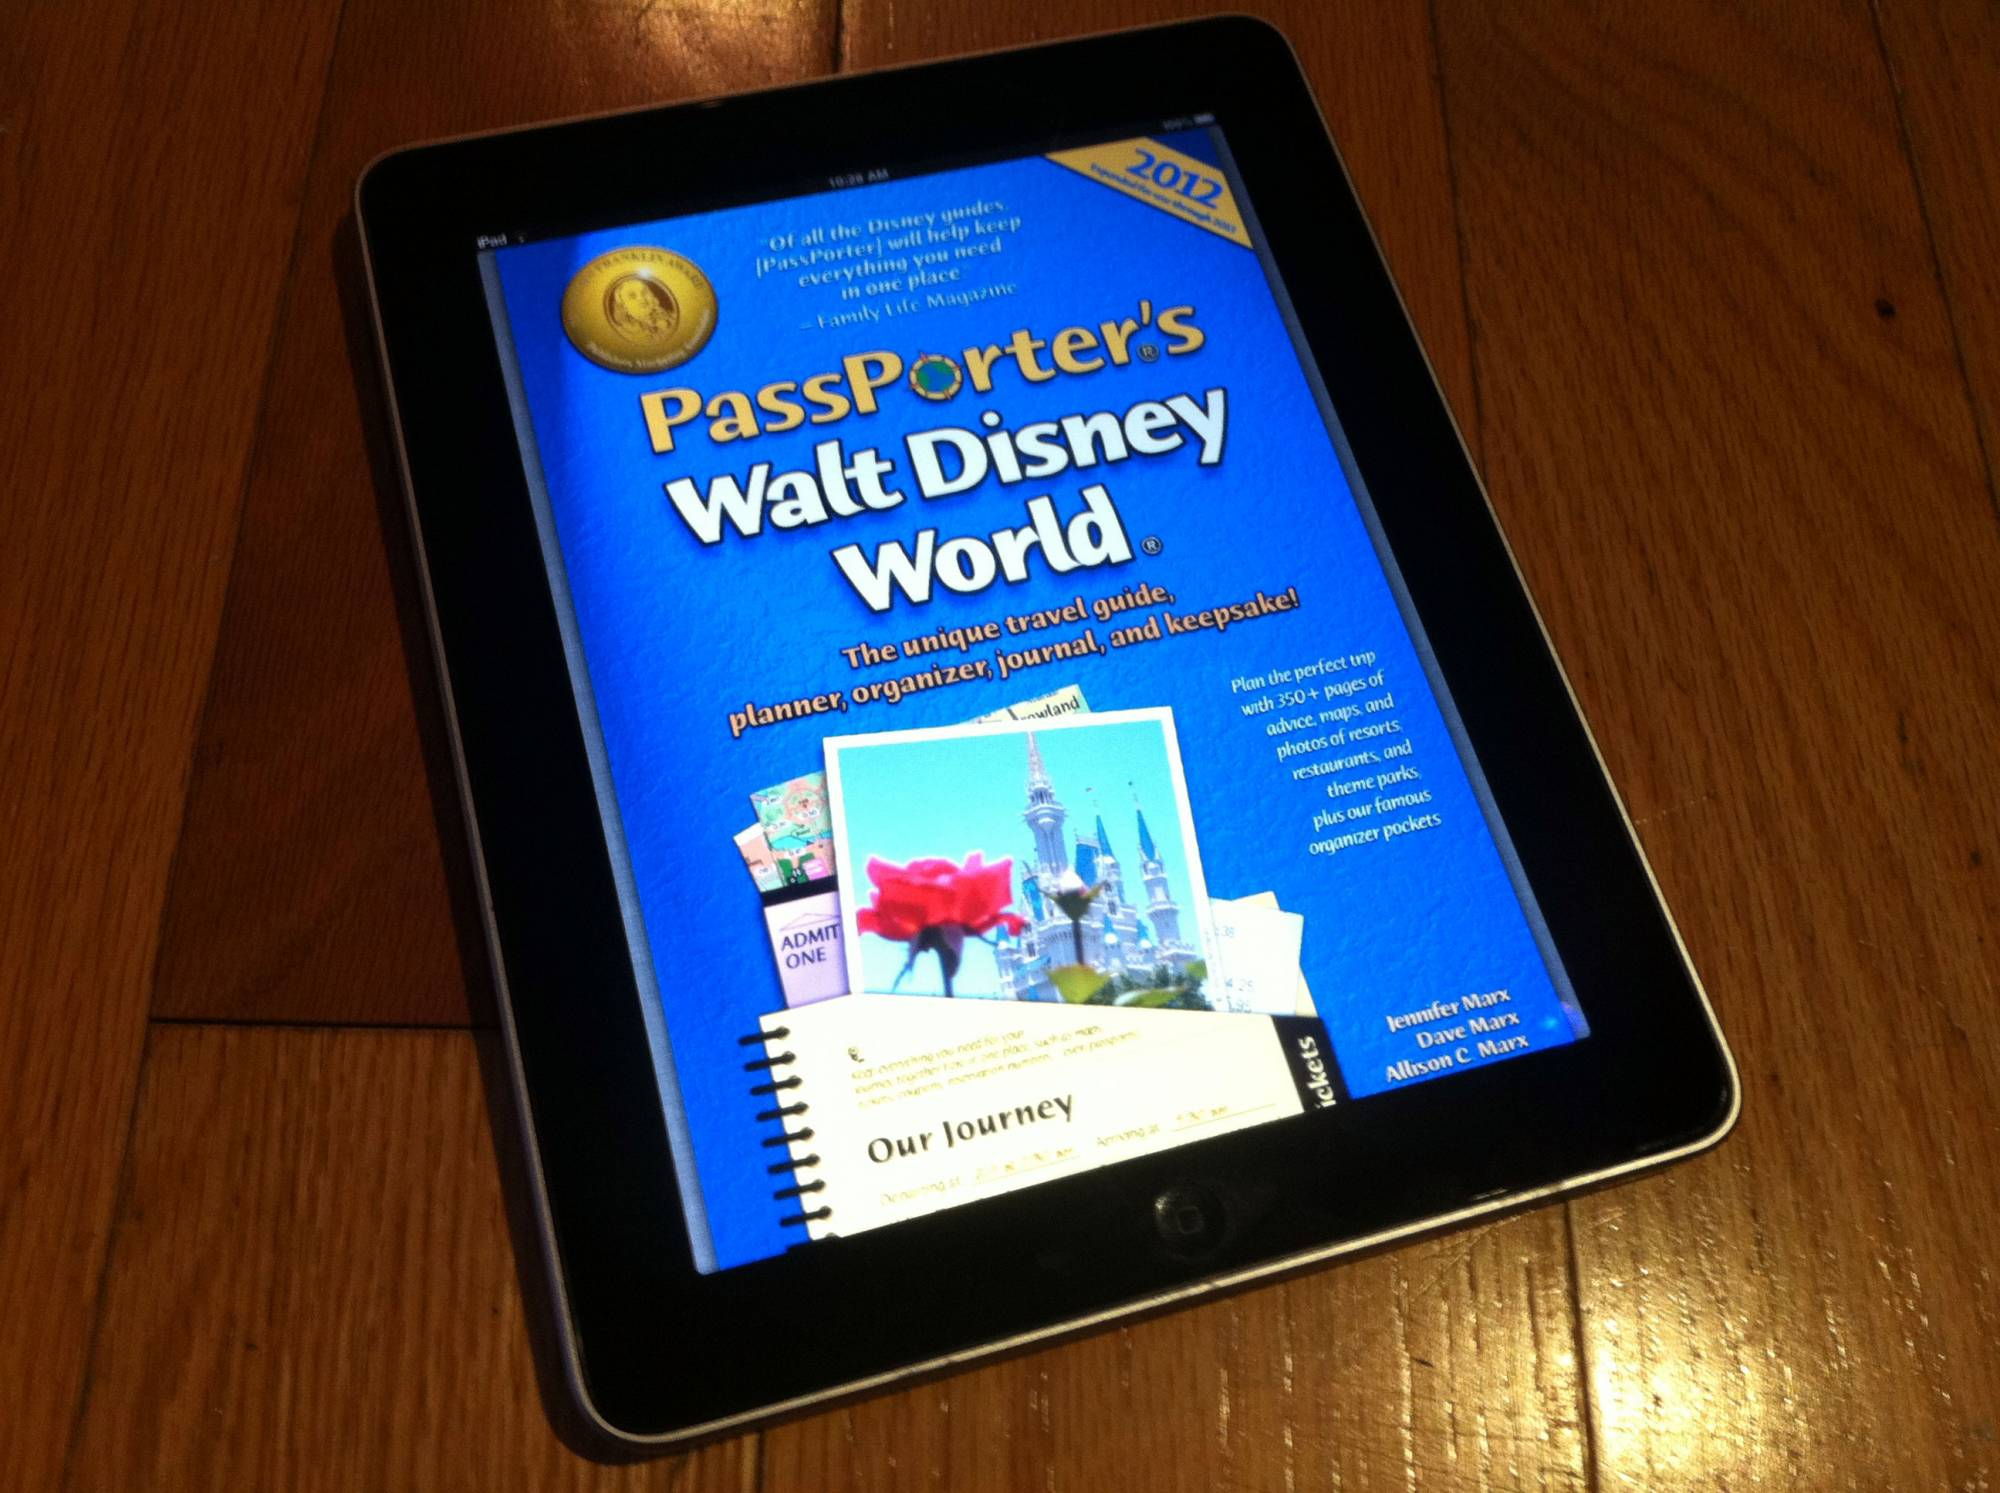 PassPorter's Walt Disney World 2012 on an iPad!